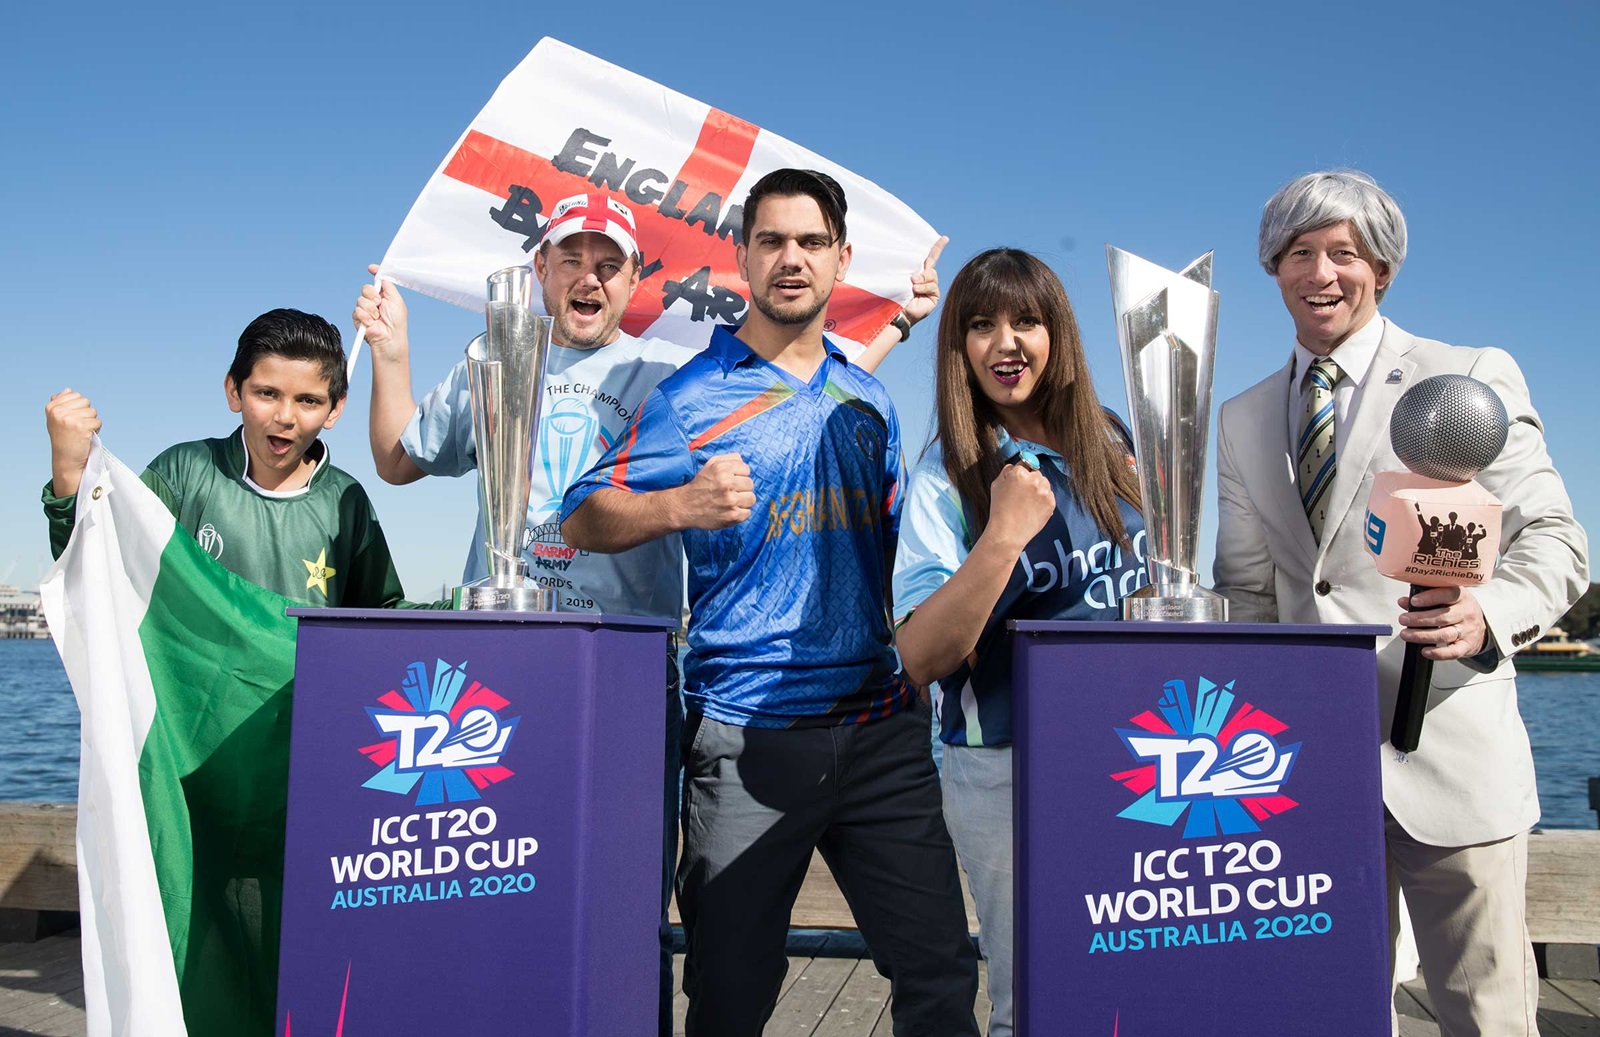 ICC T20 World Cup 2020: Decision deferred till July 2020